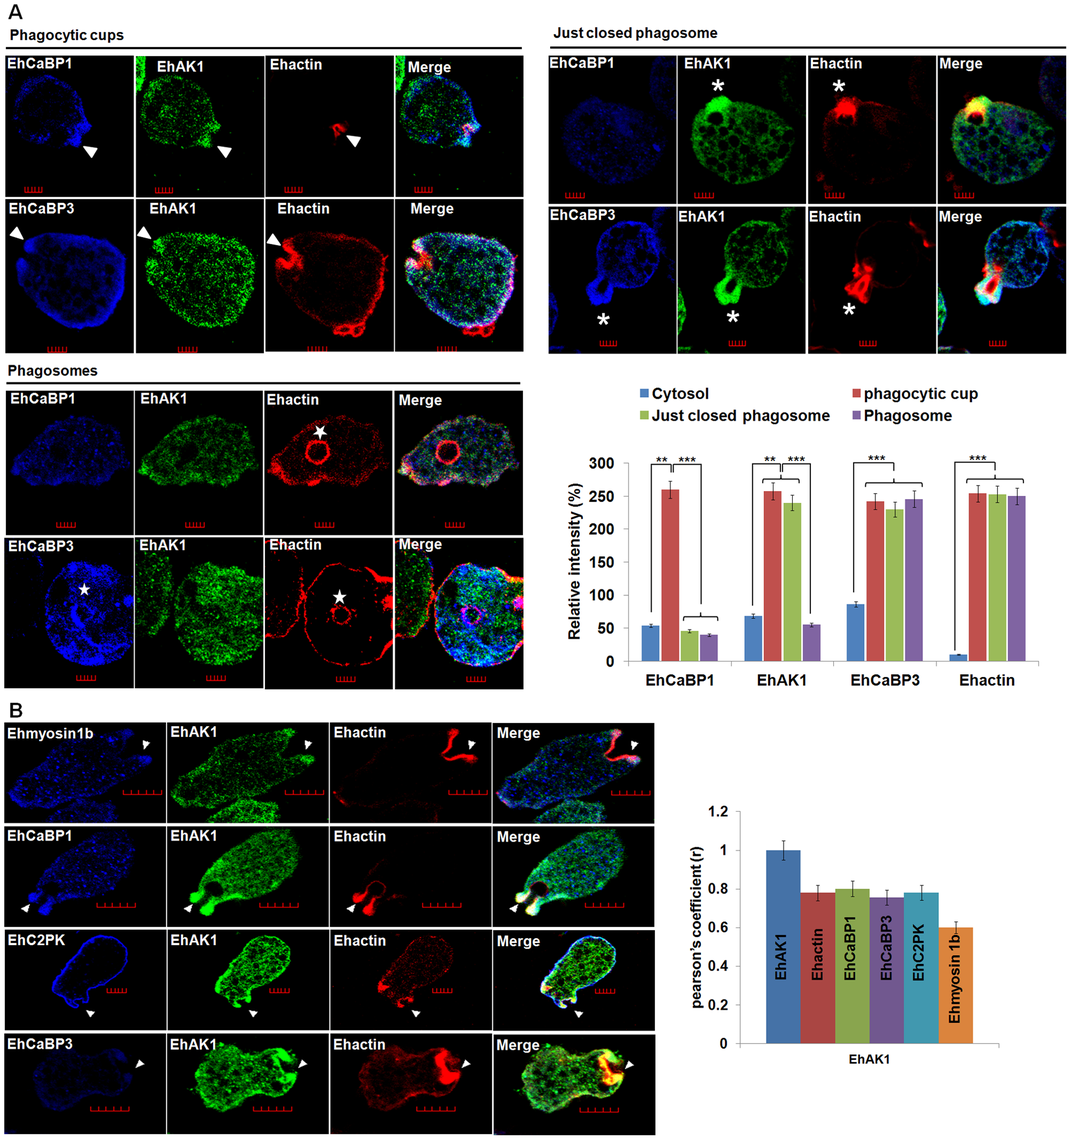 Colocalization of EhAK1 with EhMyosin 1B, EhC2PK, EhCaBP1 and EhCaBP3 at the phagocytic cup during erythrophagocytosis.